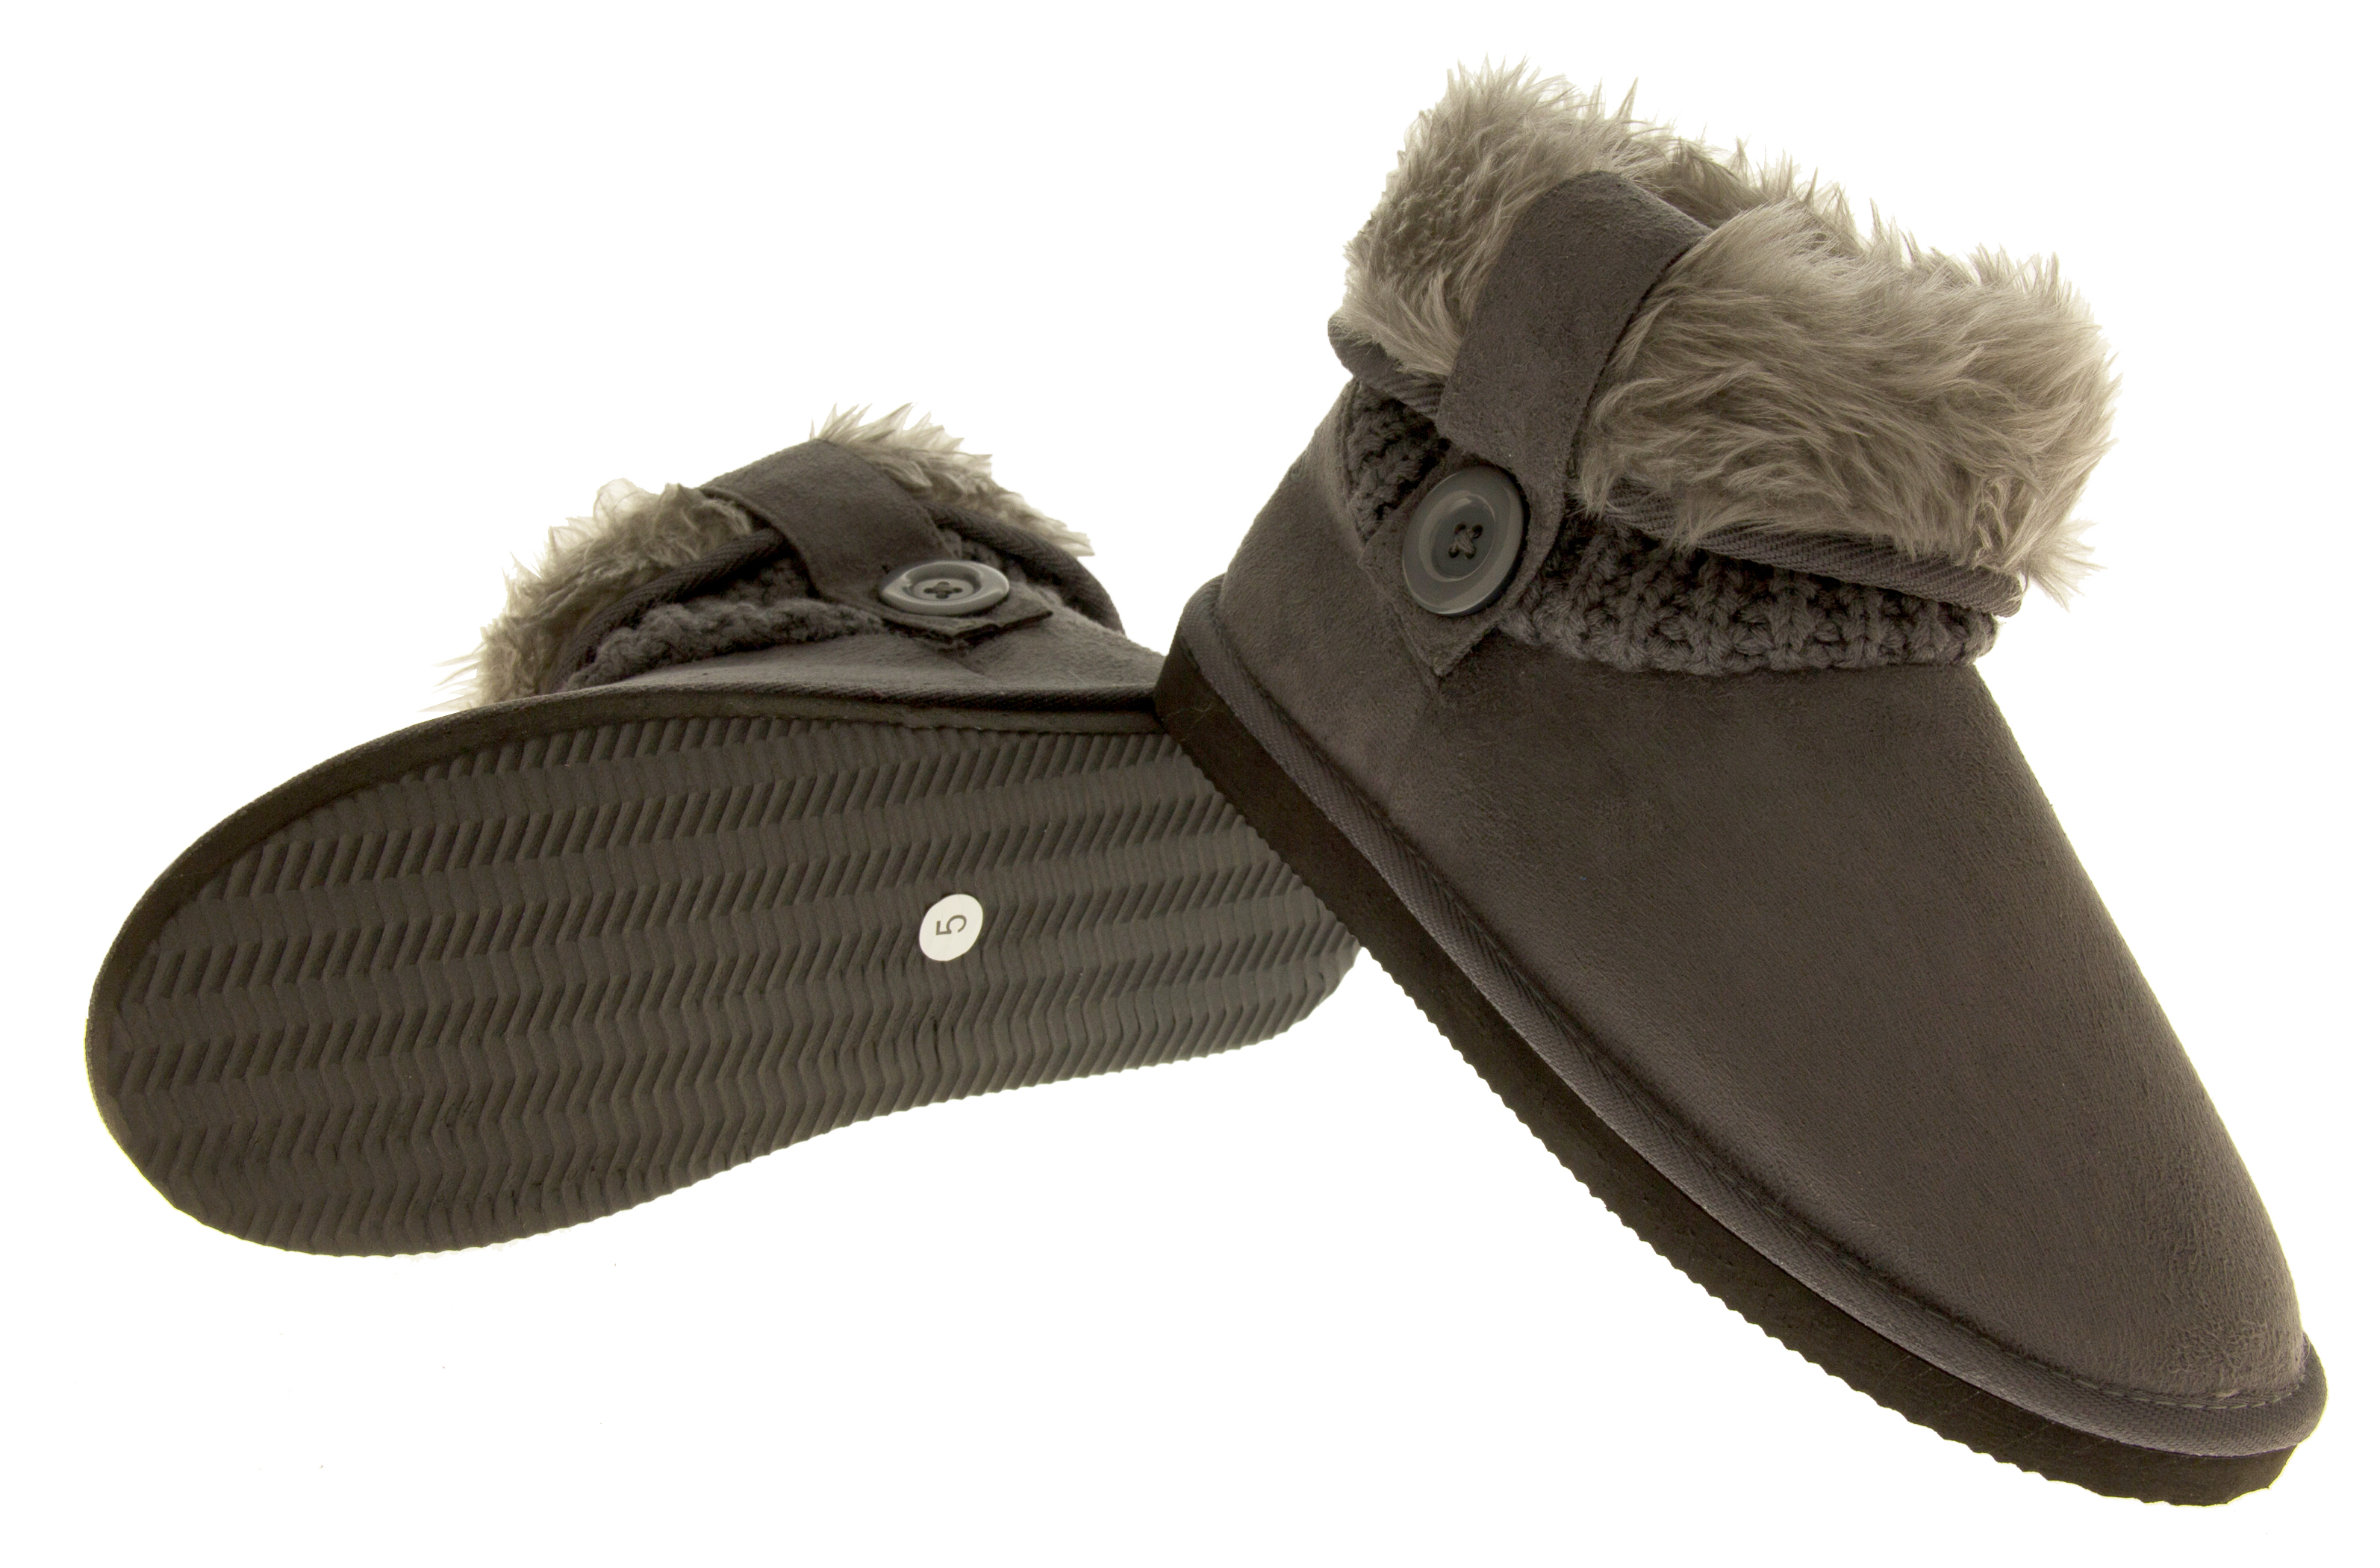 The Airwalk women's slippers include raccoons, cats, and owls for your delight and entertainment. Getting the day started has never been this much fun. When you want to look elegant even in your bathrobe, you can opt for women's satin slippers.